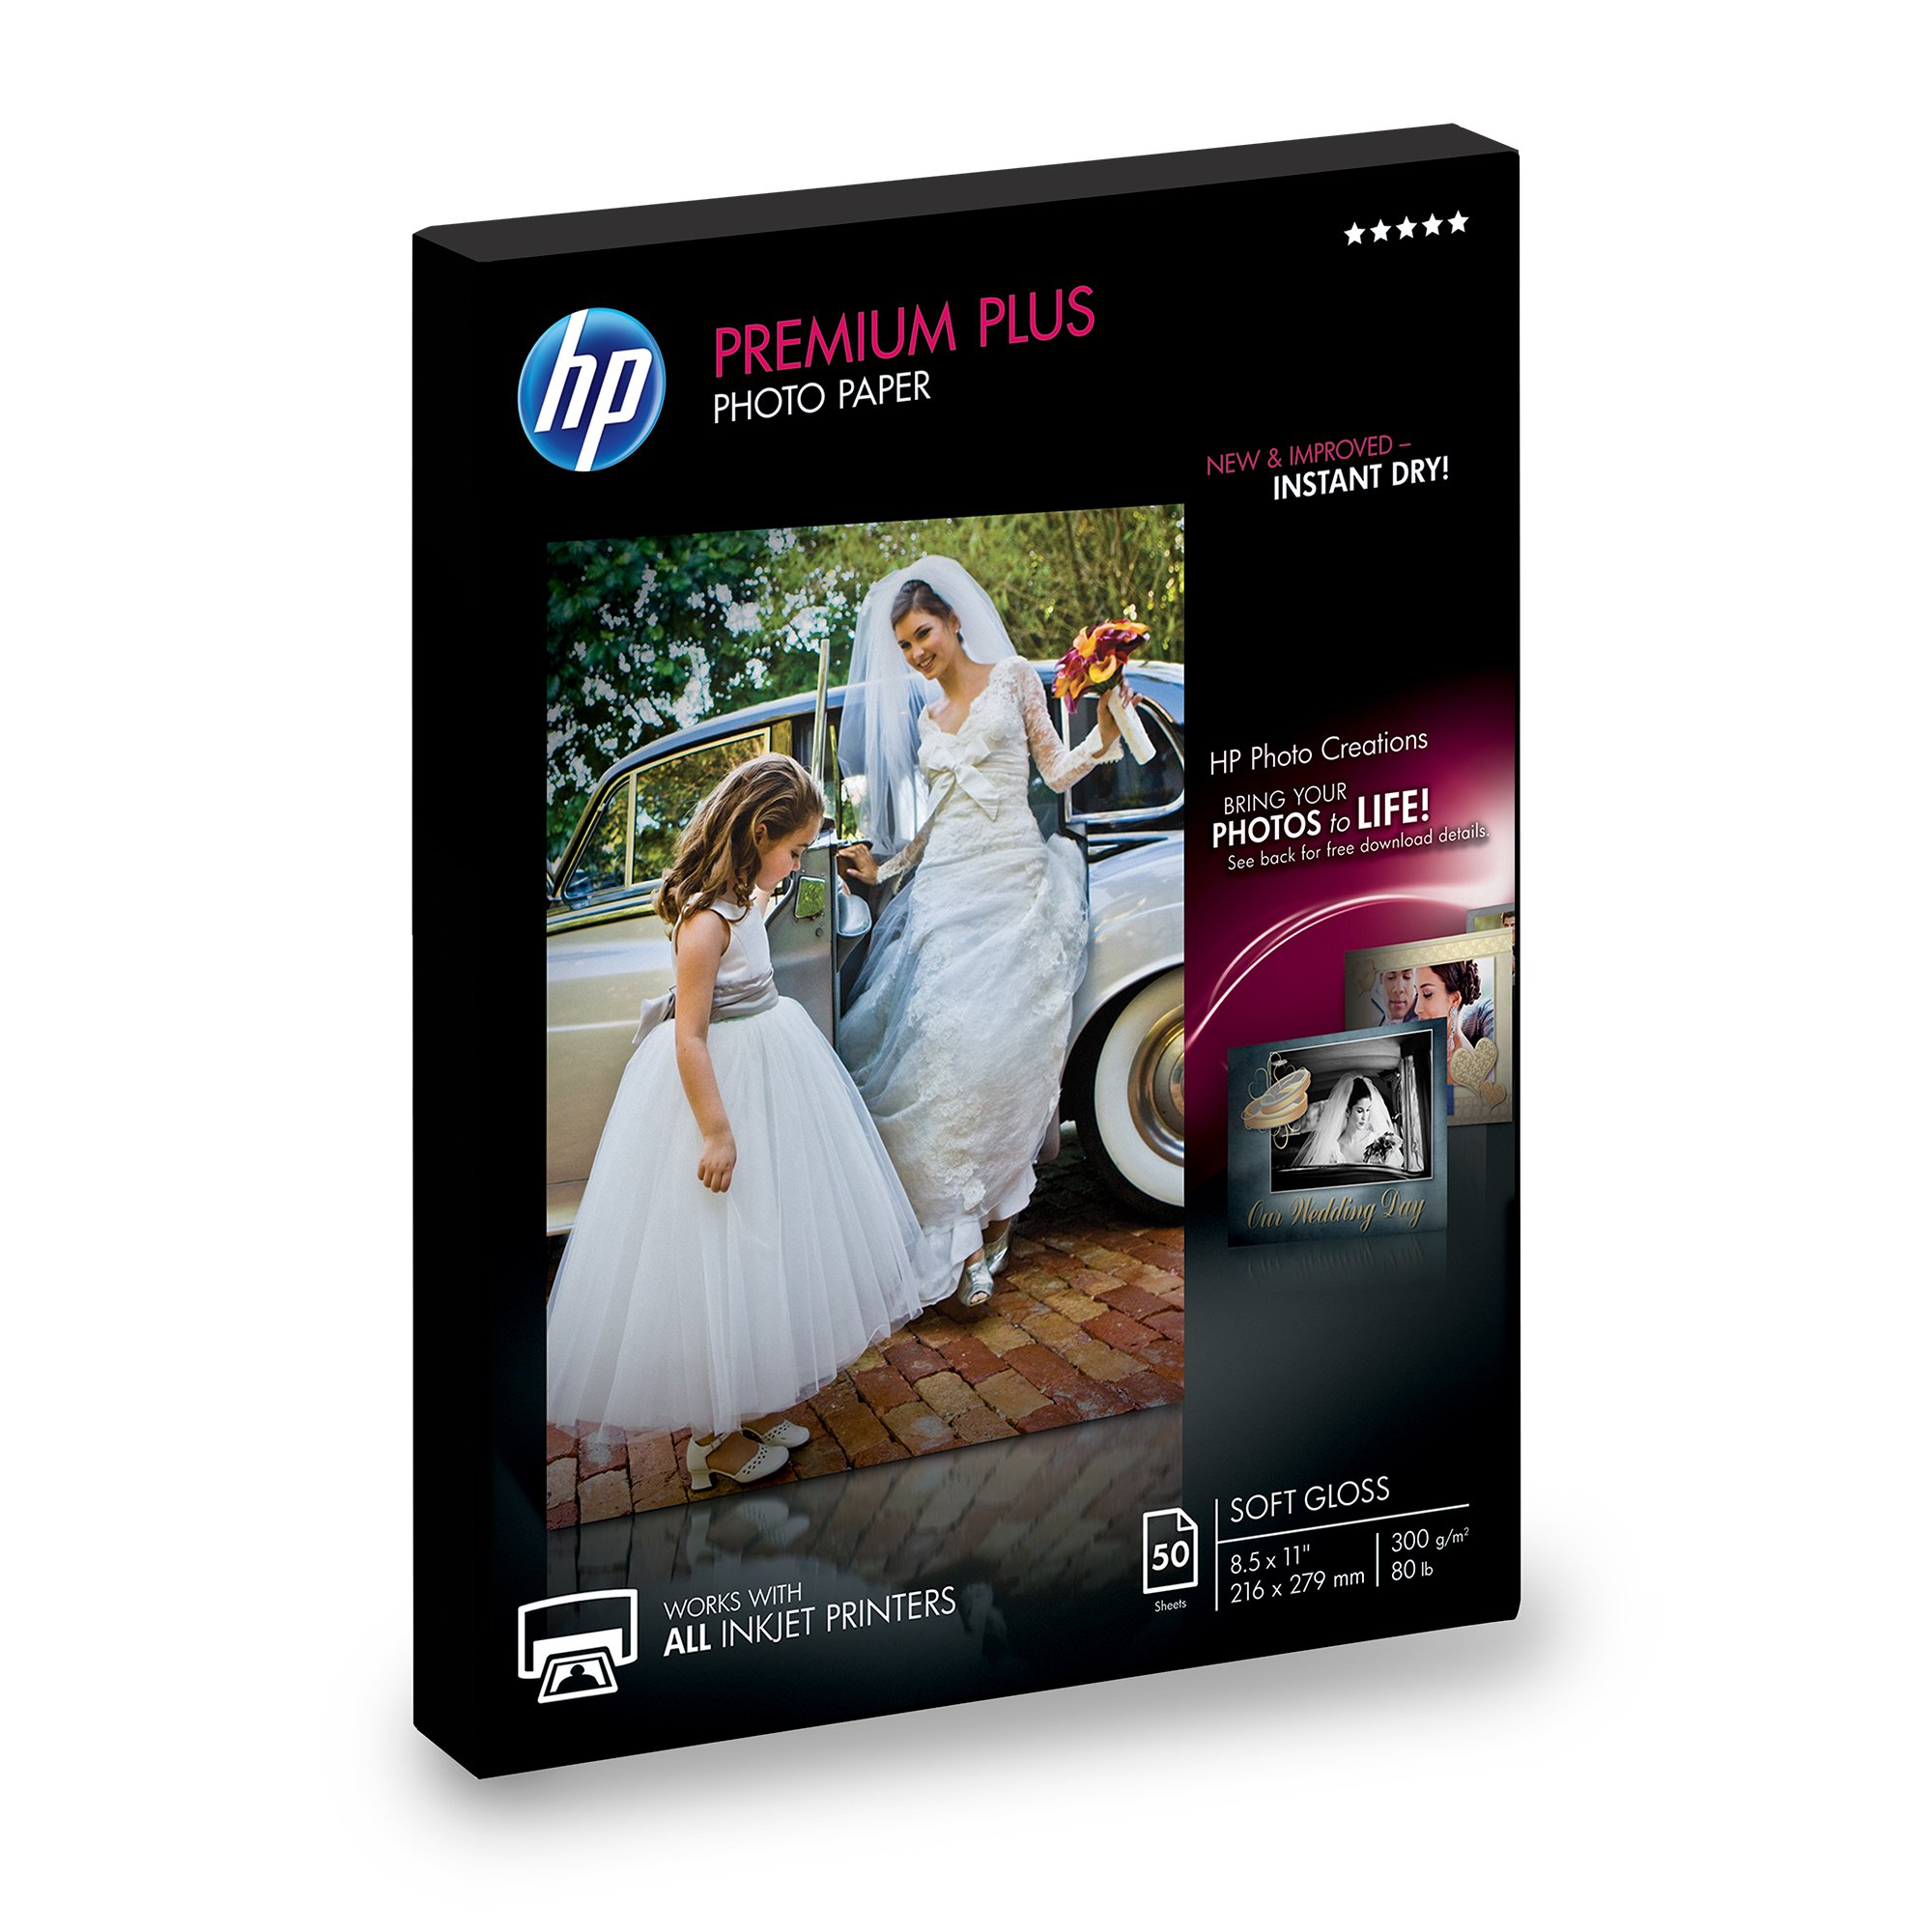 HP Photo Paper Premium Plus, Soft Gloss, (8.5x11 inch), 50 sheets by HP